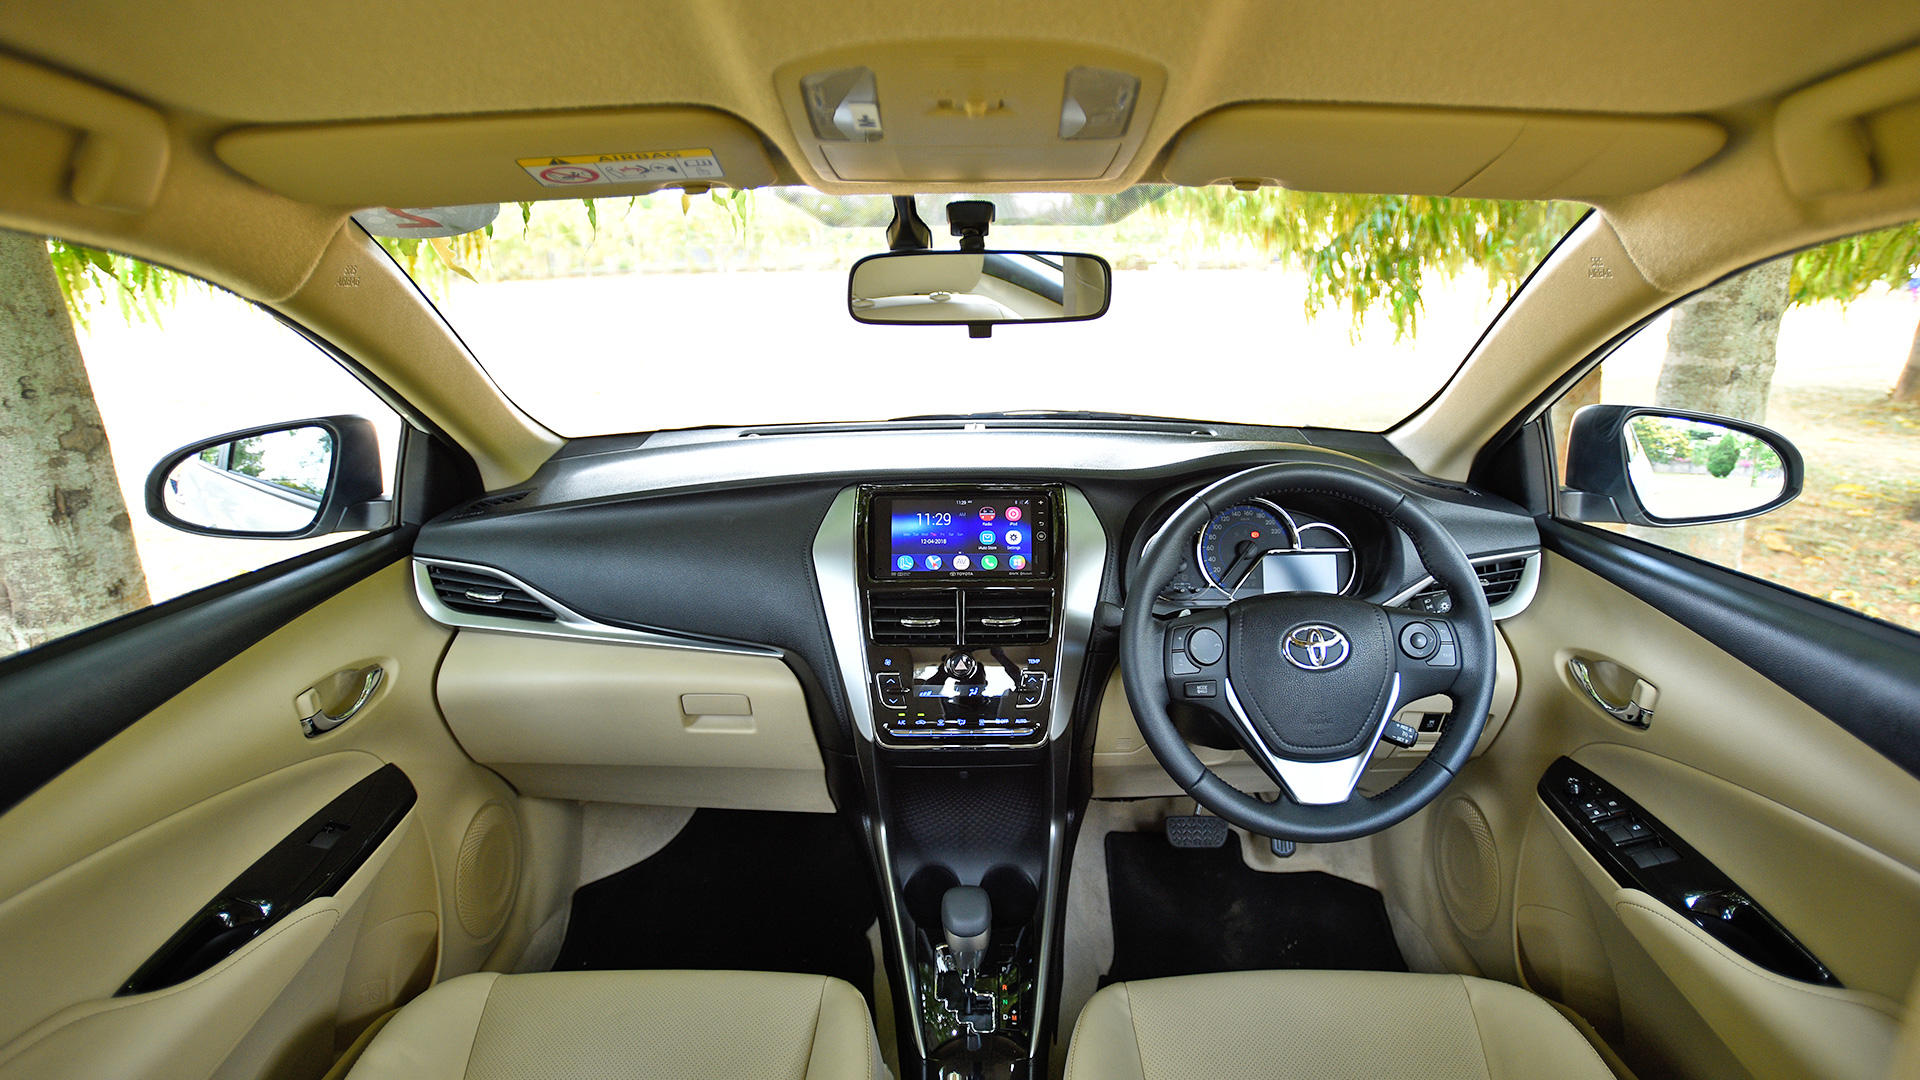 toyota yaris 2018 v cvt price mileage reviews specification gallery overdrive. Black Bedroom Furniture Sets. Home Design Ideas